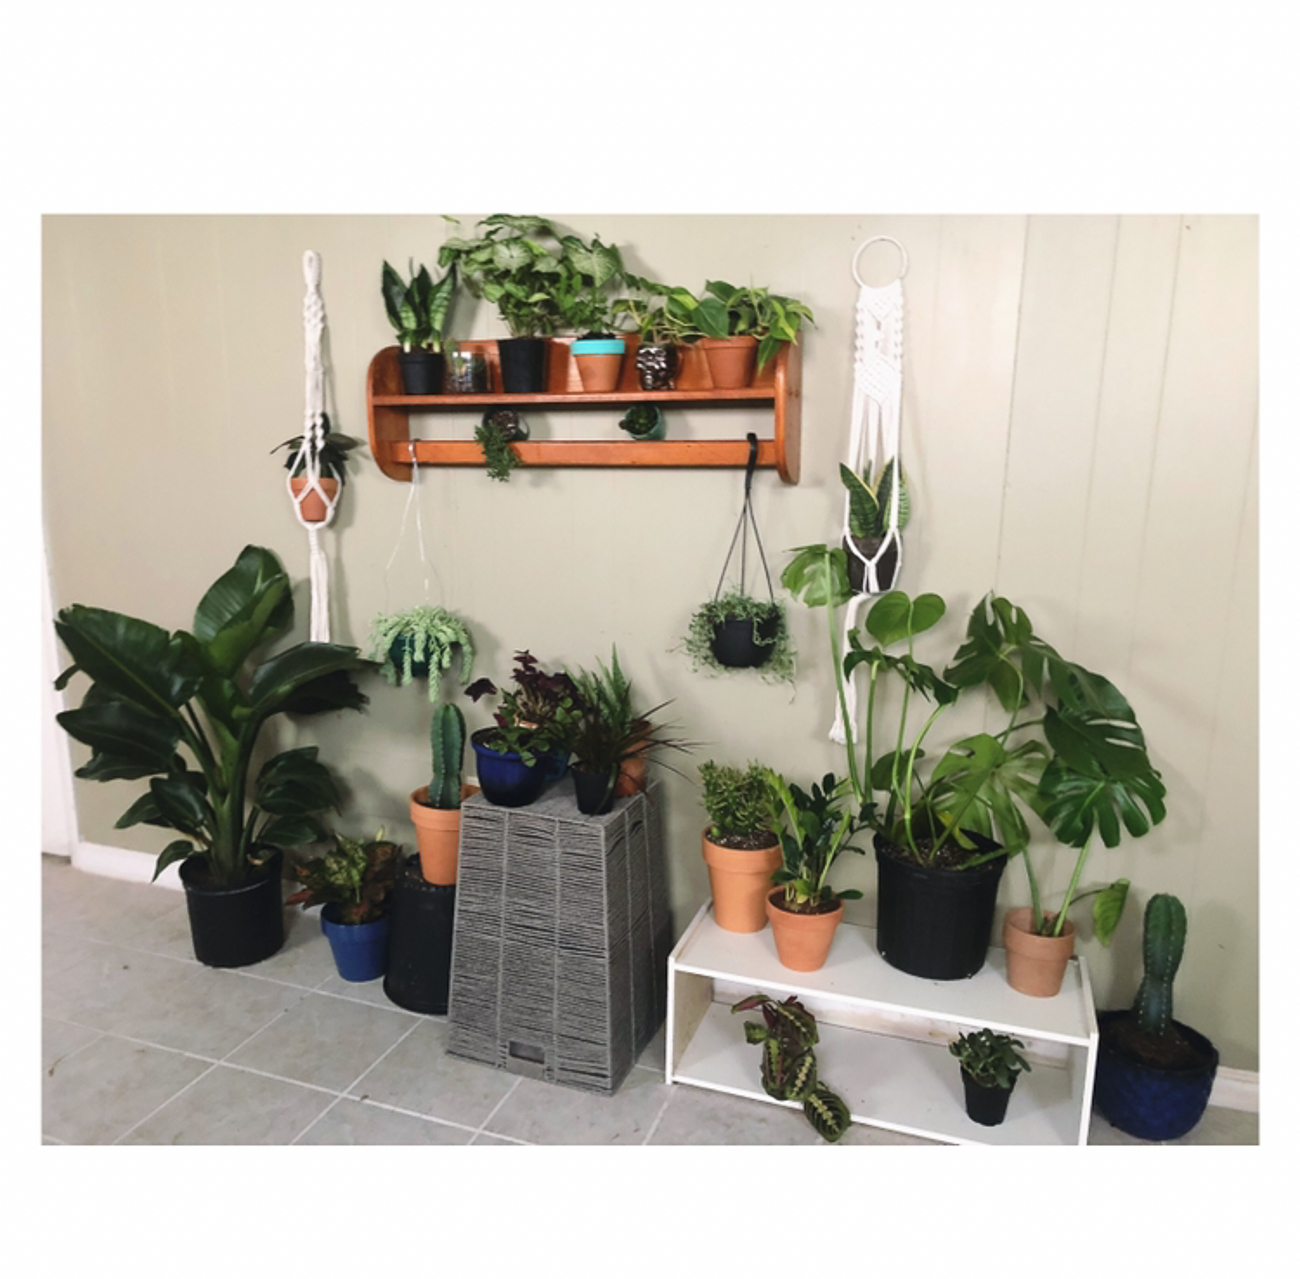 "Nichole Edwards (IG: @cincyplantlady) / ""My plant room is my wonderland. It's a place I can call my calm when things are crazy. I've had a lifetime love for plants but, never knew it would really be my thing. During self quarantine, I had lots of time to expand my collection and fall in love with my passion."" / Image courtesy of Nichole Edwards // Published: 6.13.20"